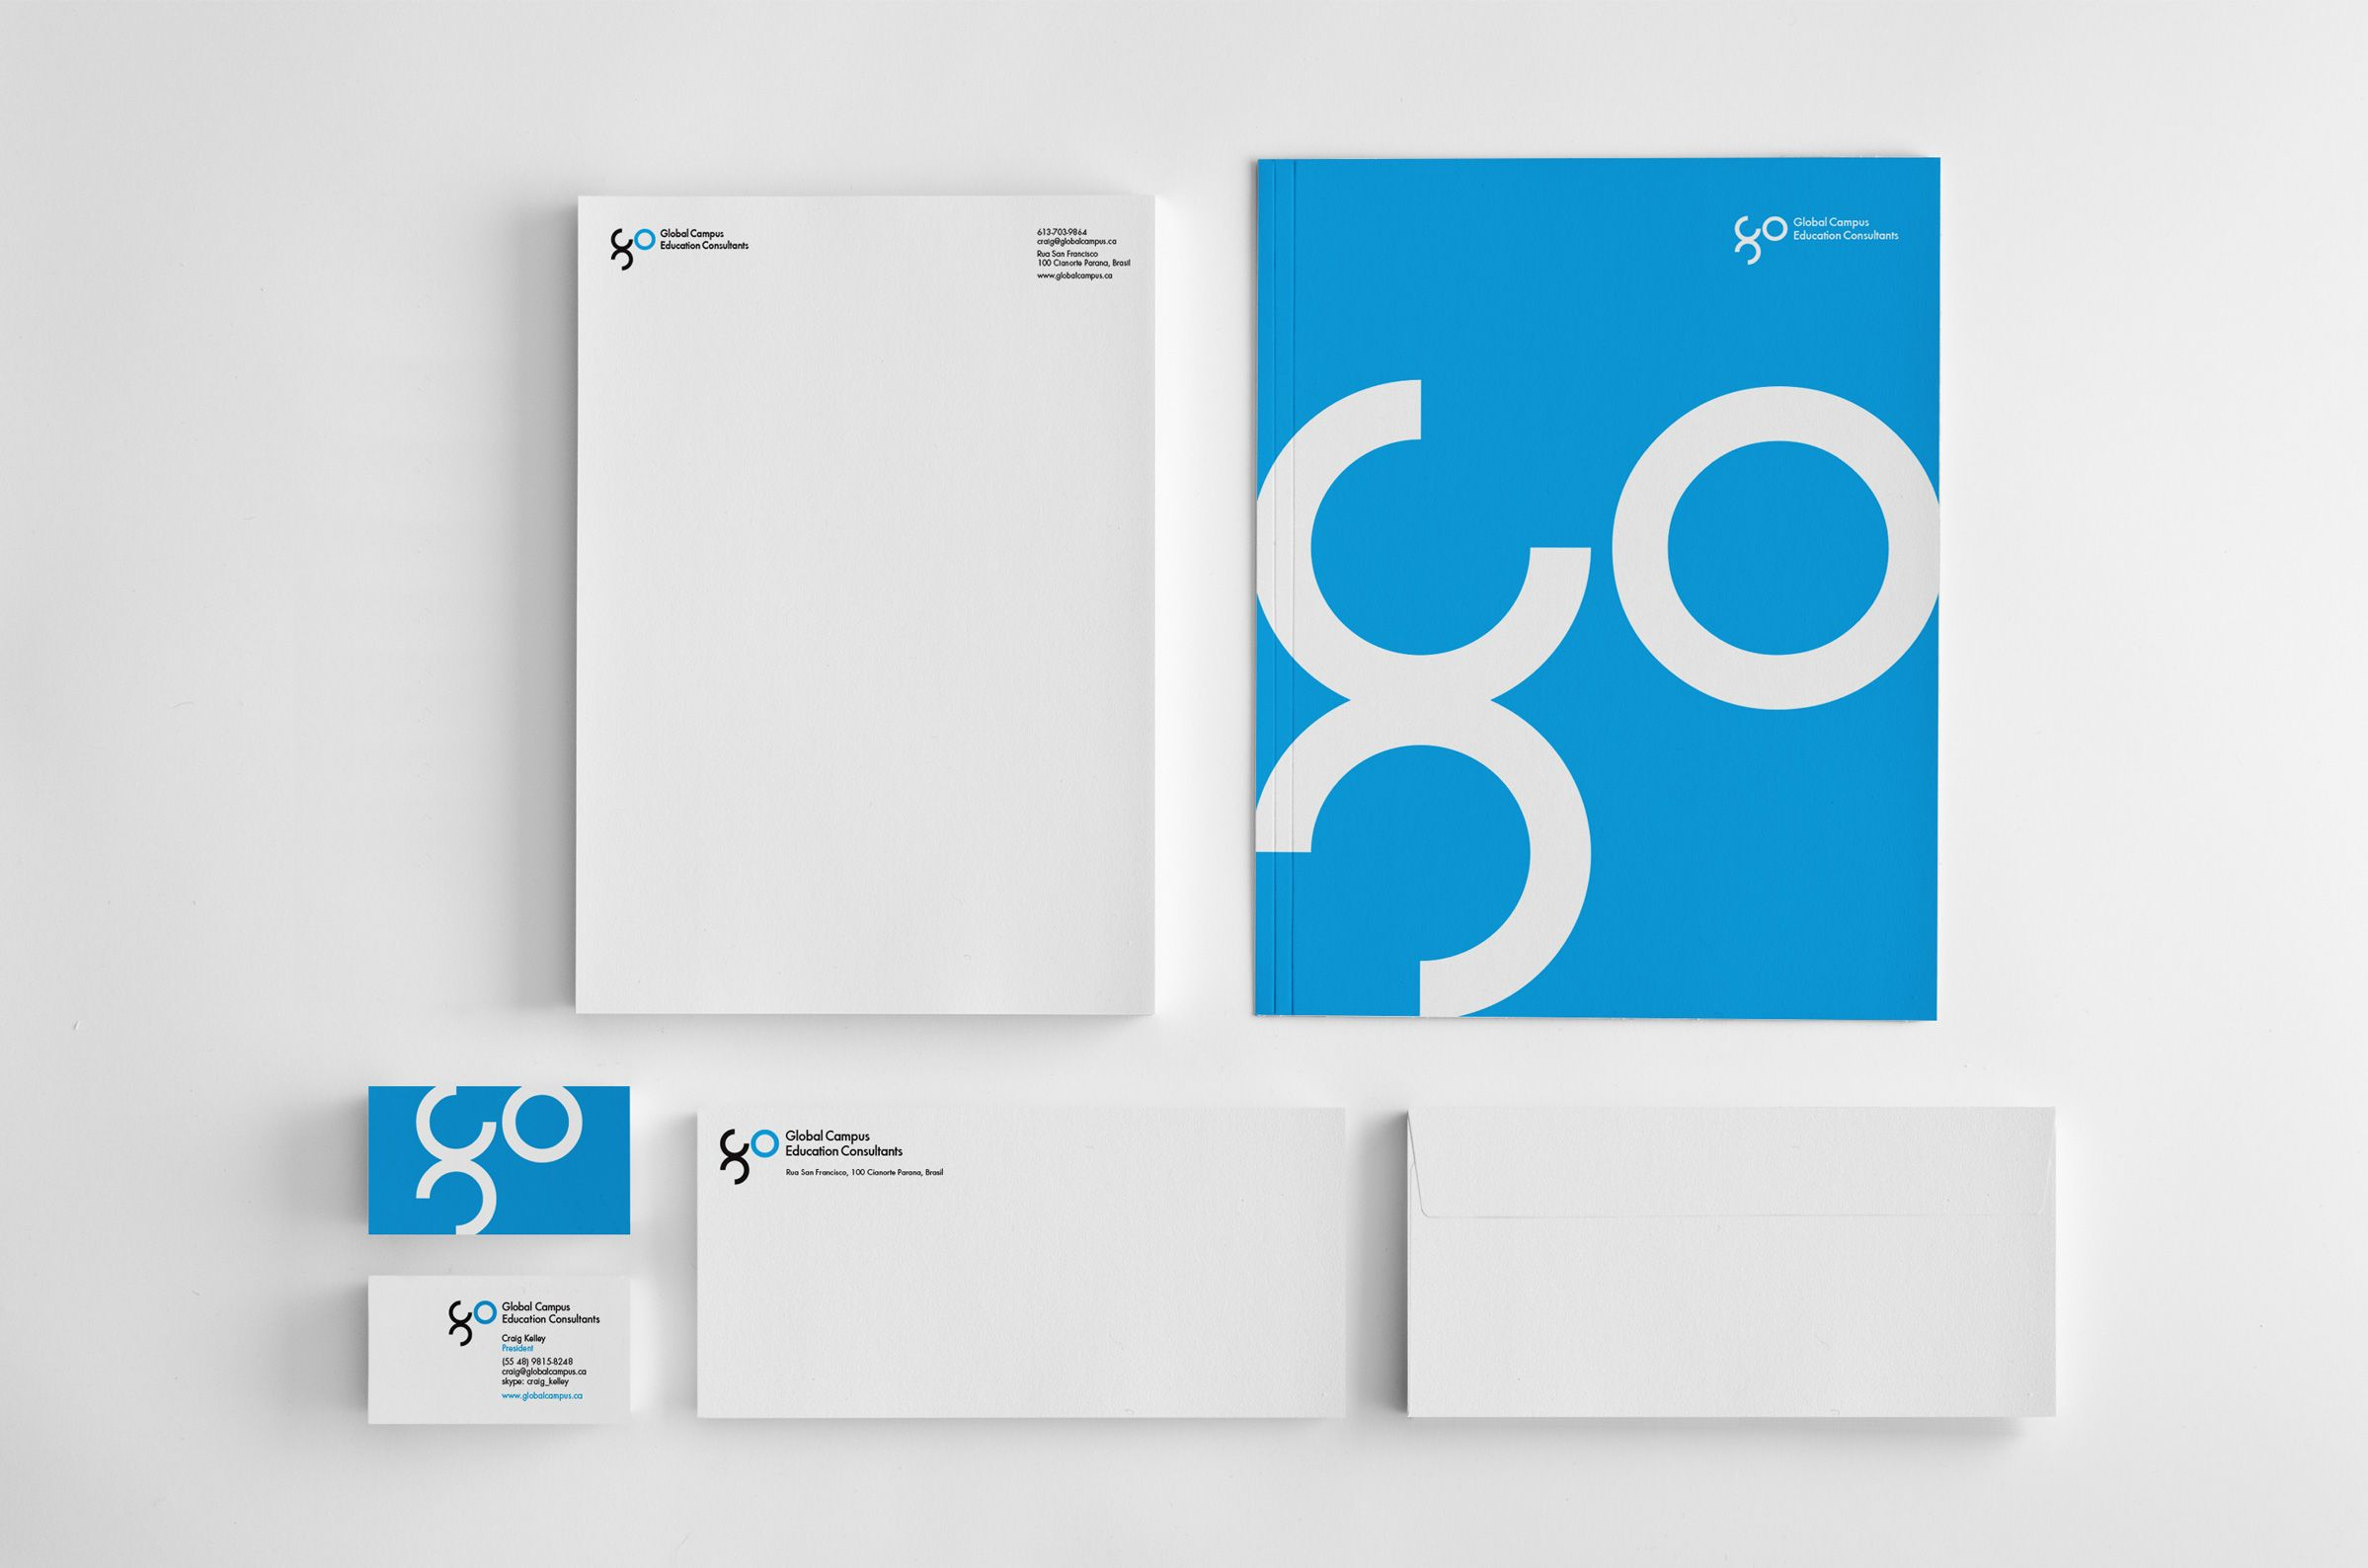 Stationery for Global Campus Education Consultants, a student recruitment company by Ottawa Graphic Designer idApostle